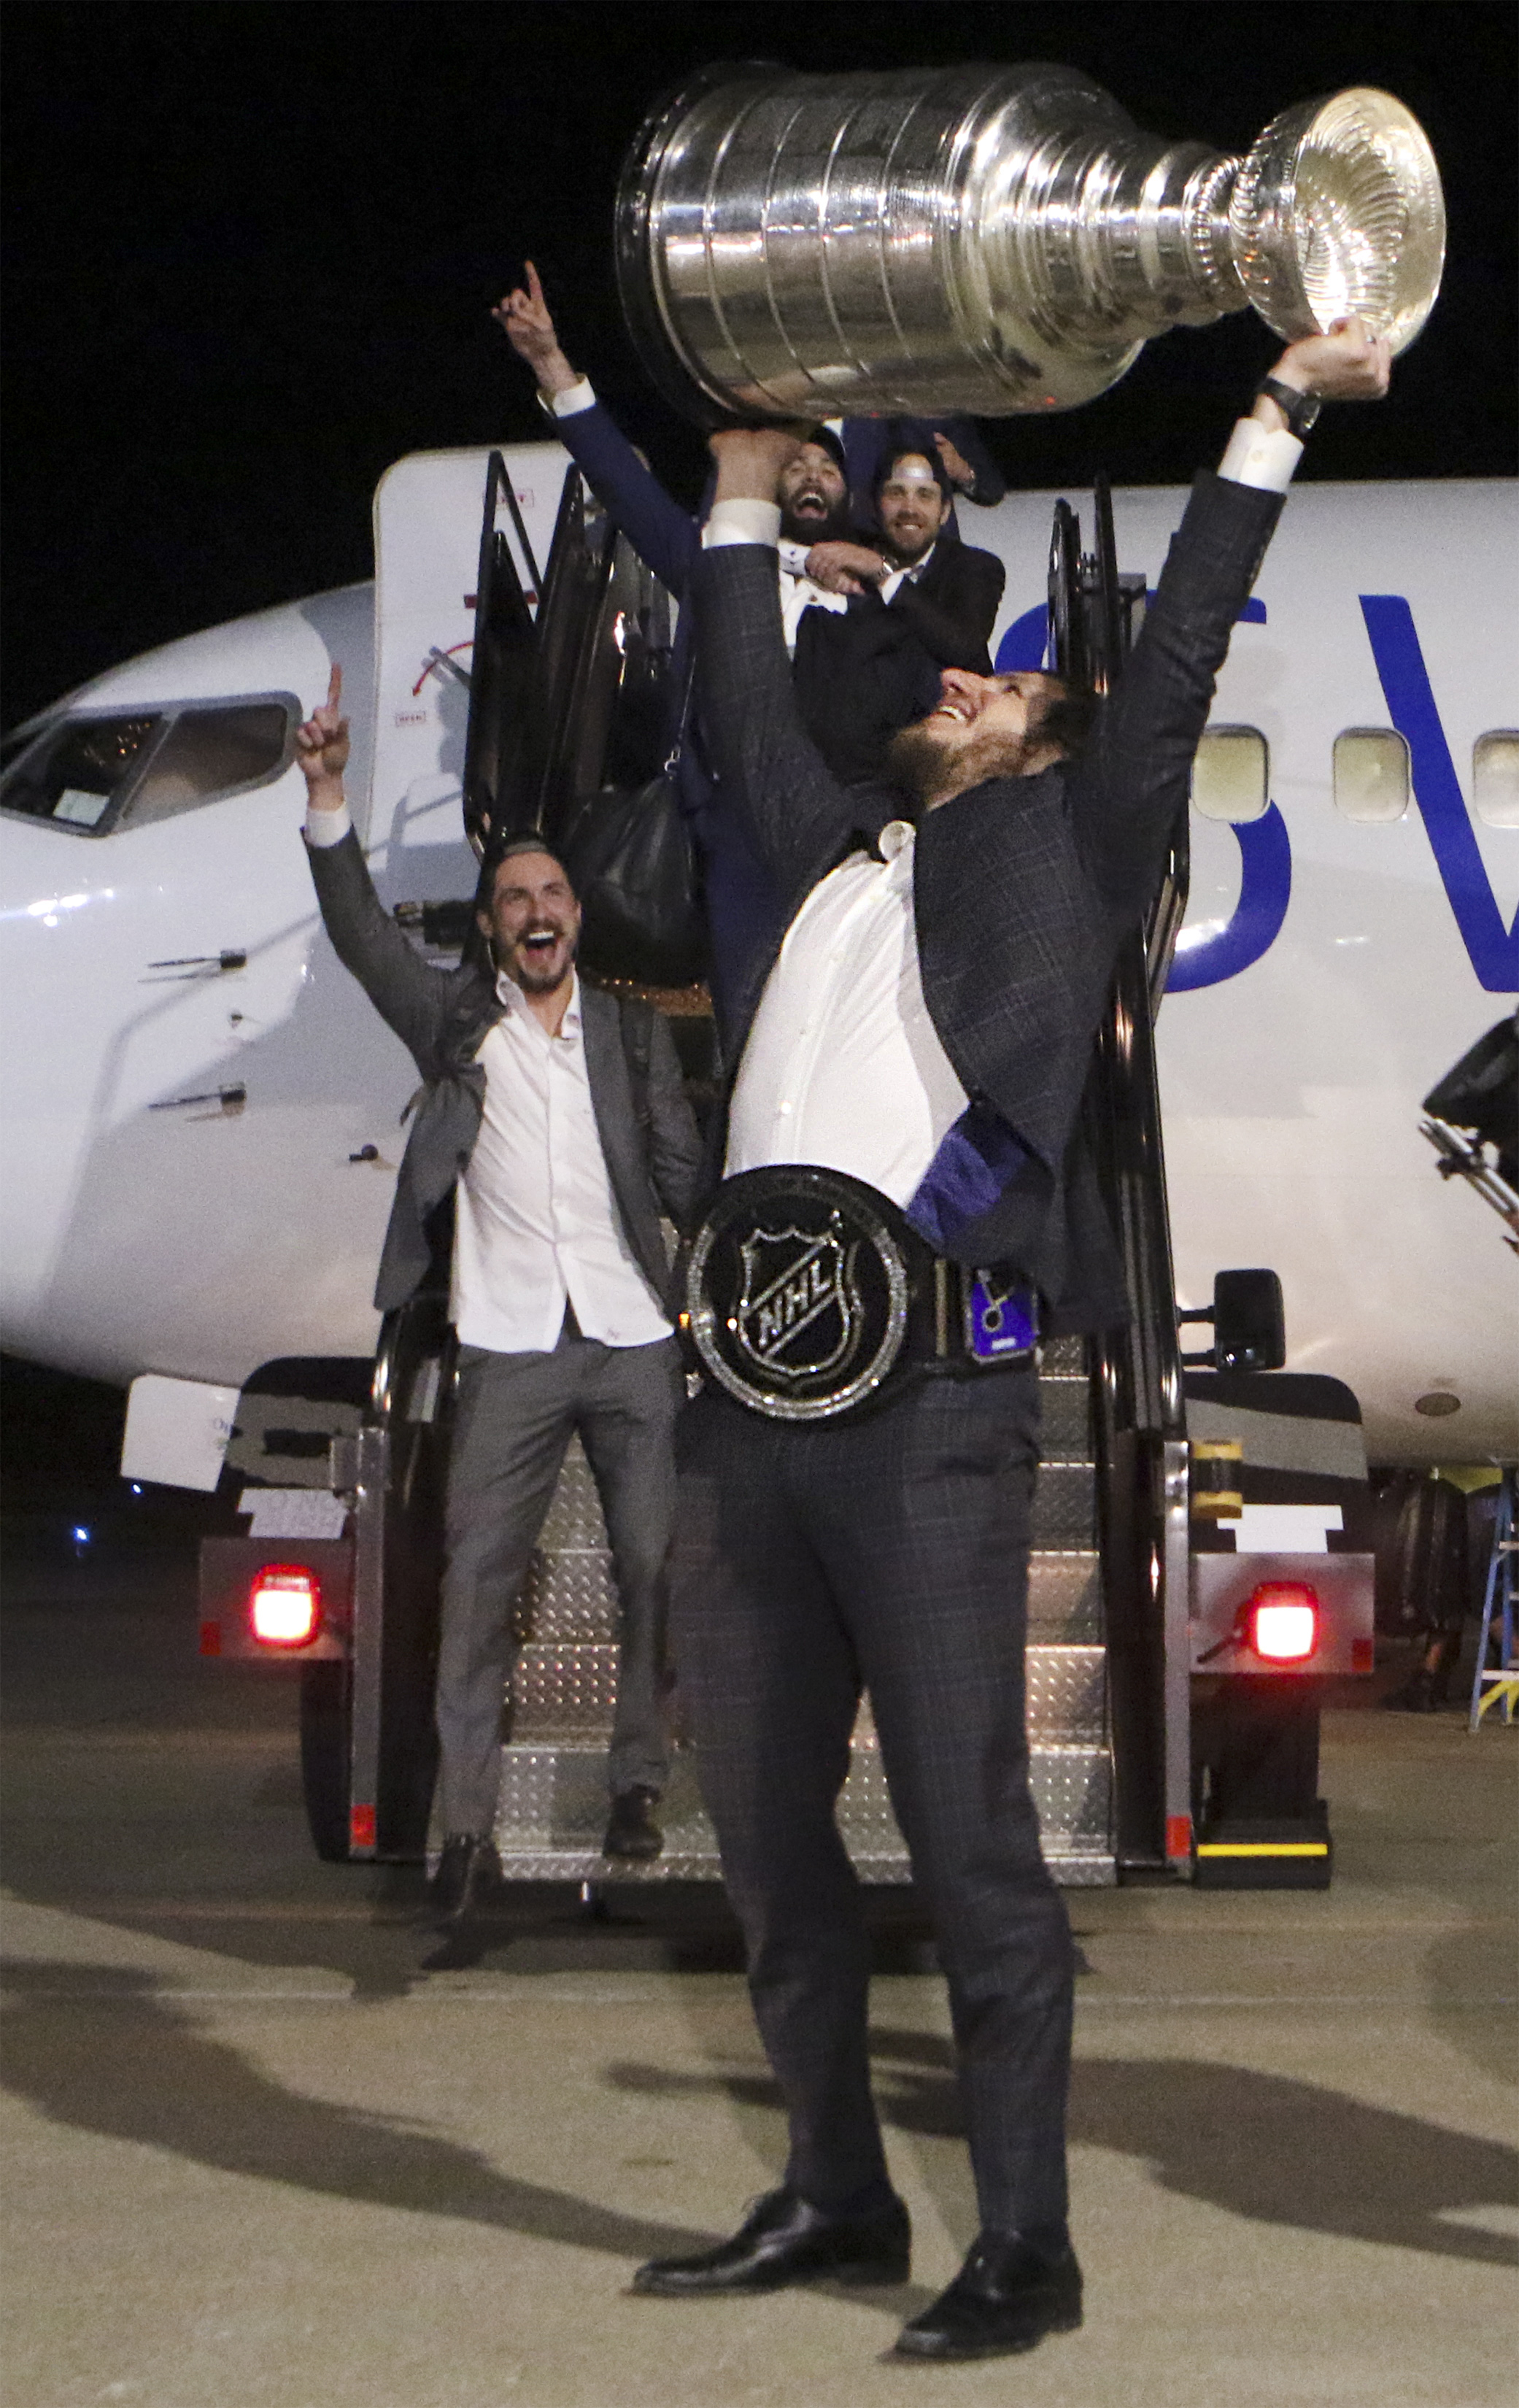 Alexander Steen hoists the Stanley Cup over his head after disembarking the plane on Thursday, June 13, 2019 as the team arrives home from Boston at Lambert International Airport.